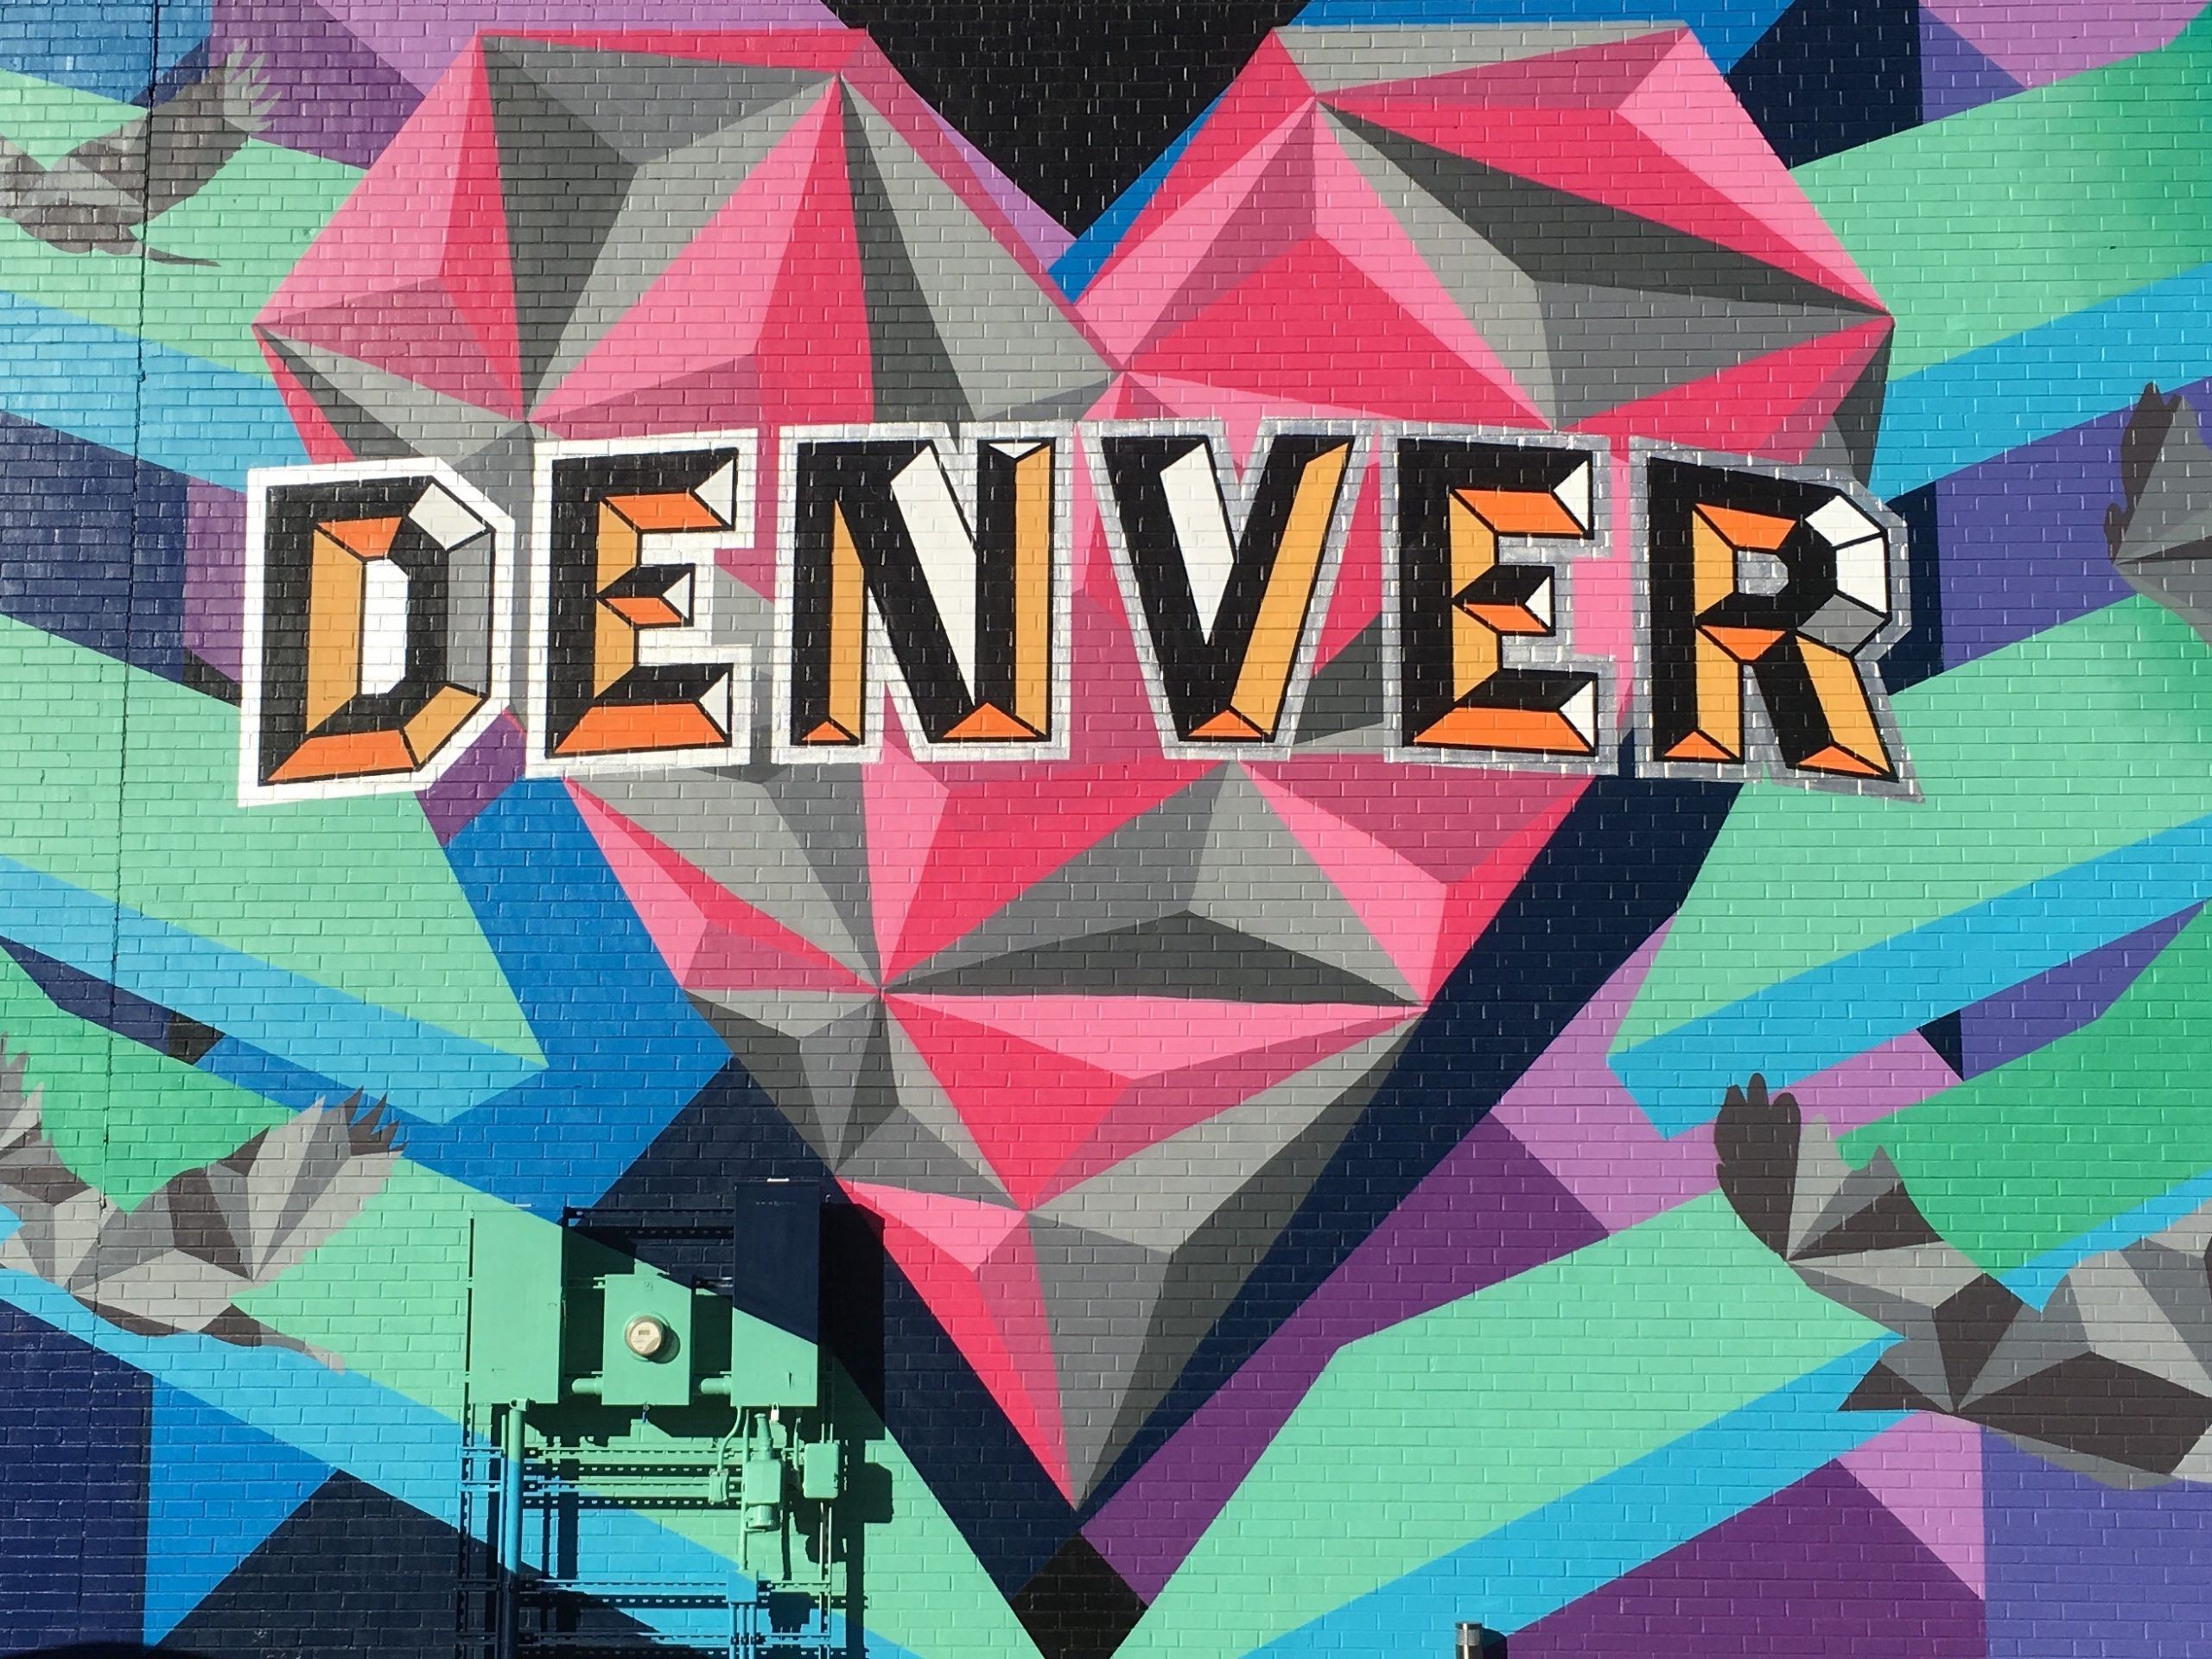 Top 3 Reasons to Live in Denver